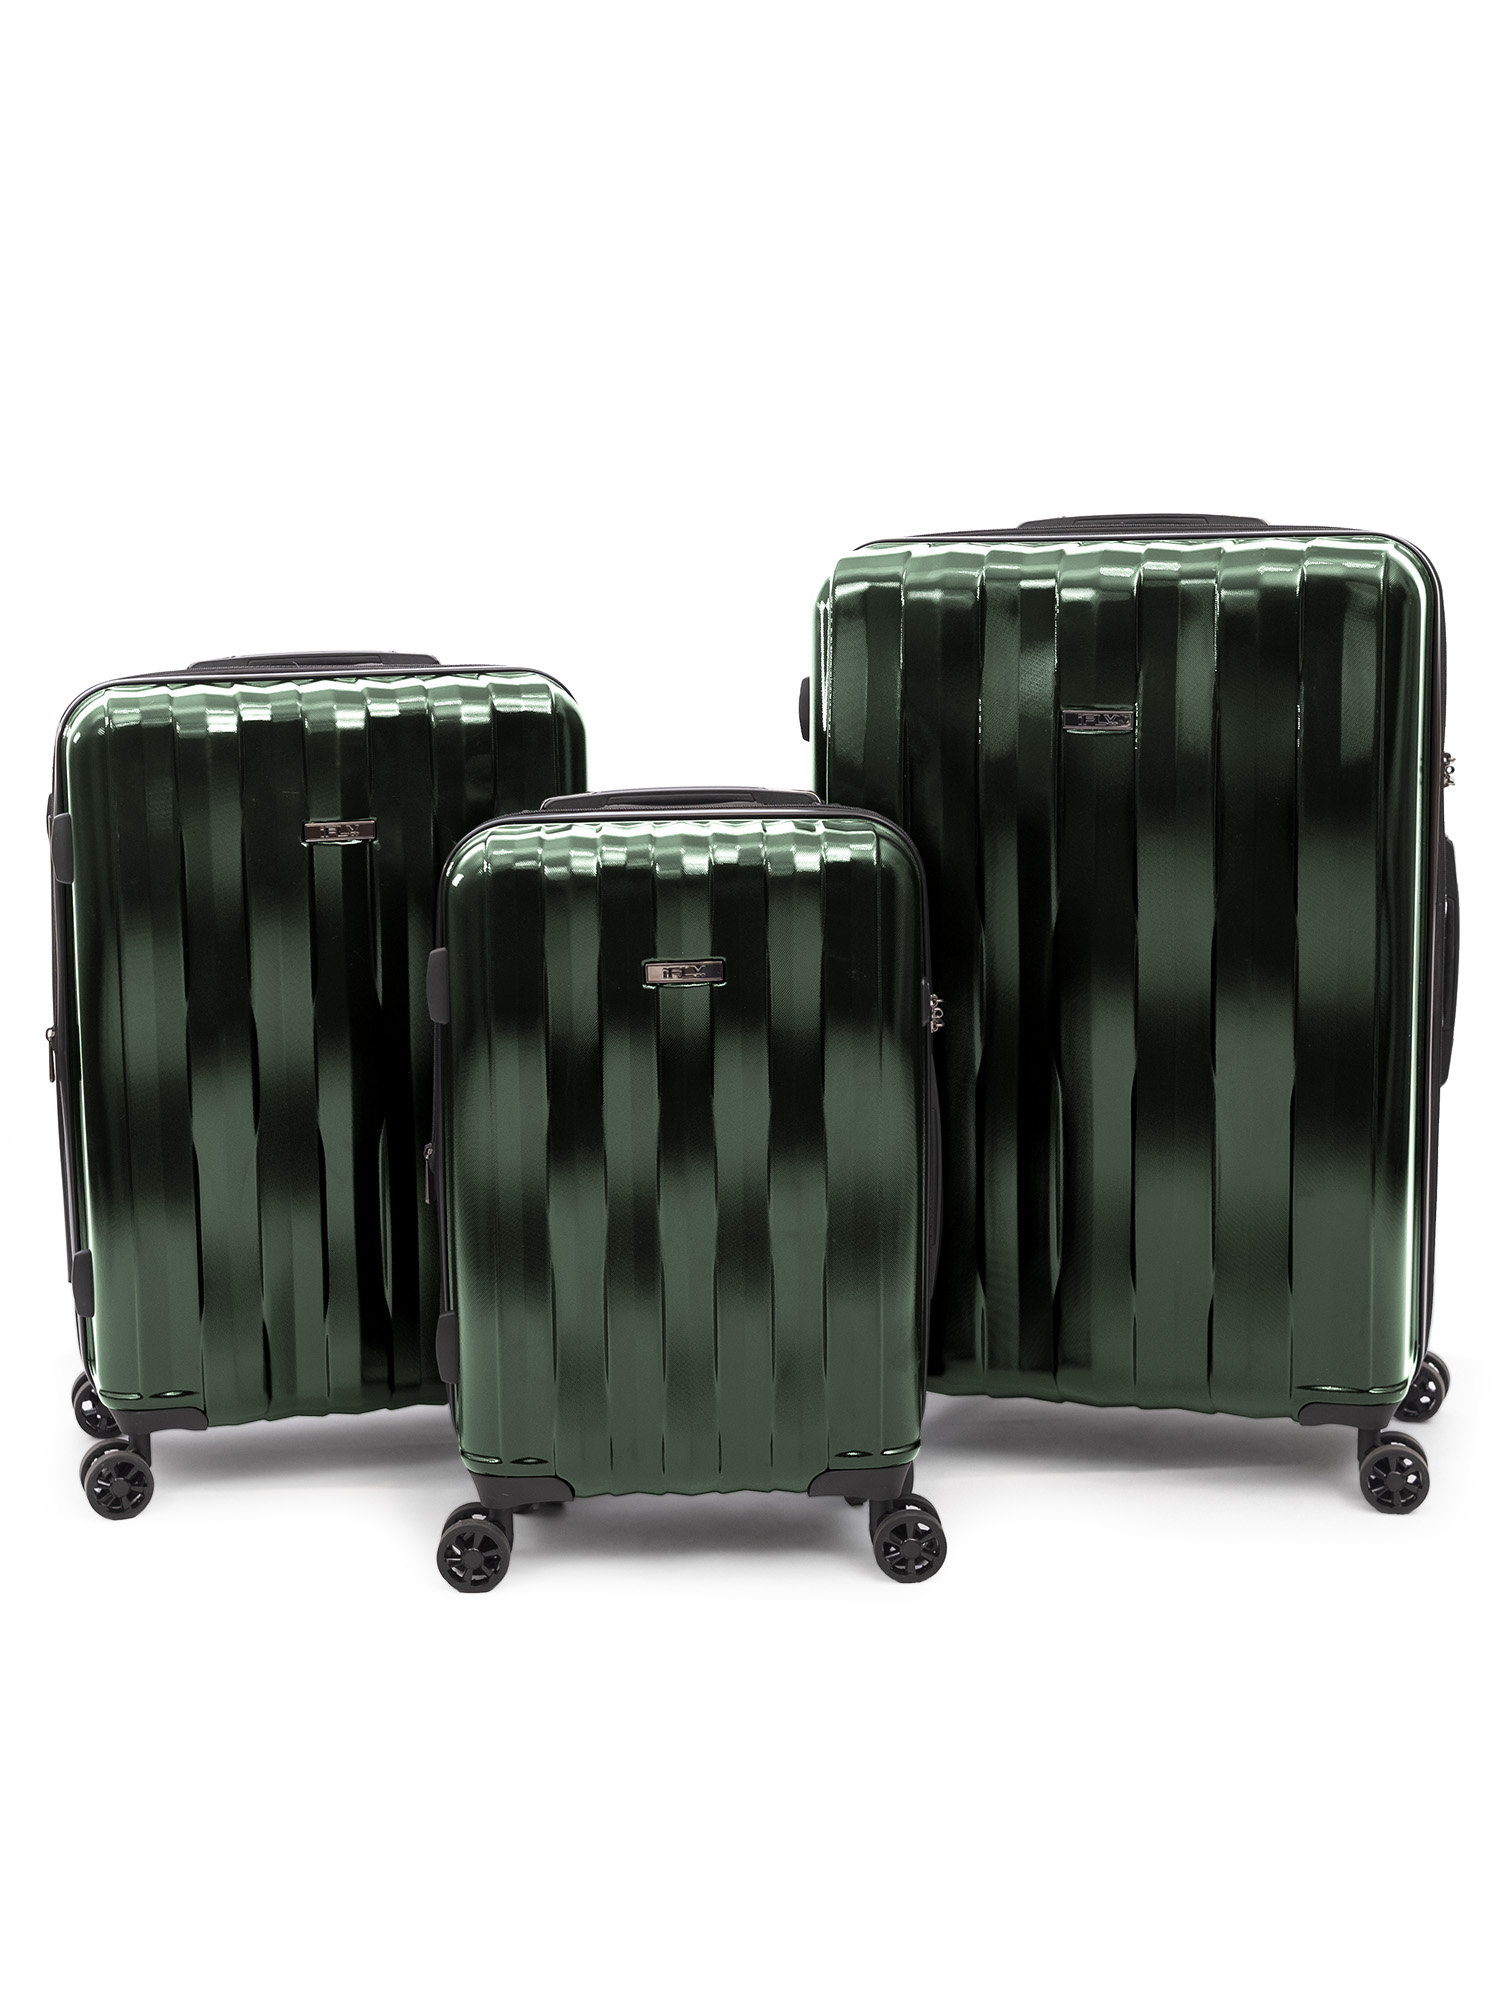 iFLY Hard Sided Luggage Synergy 3 piece set, Green